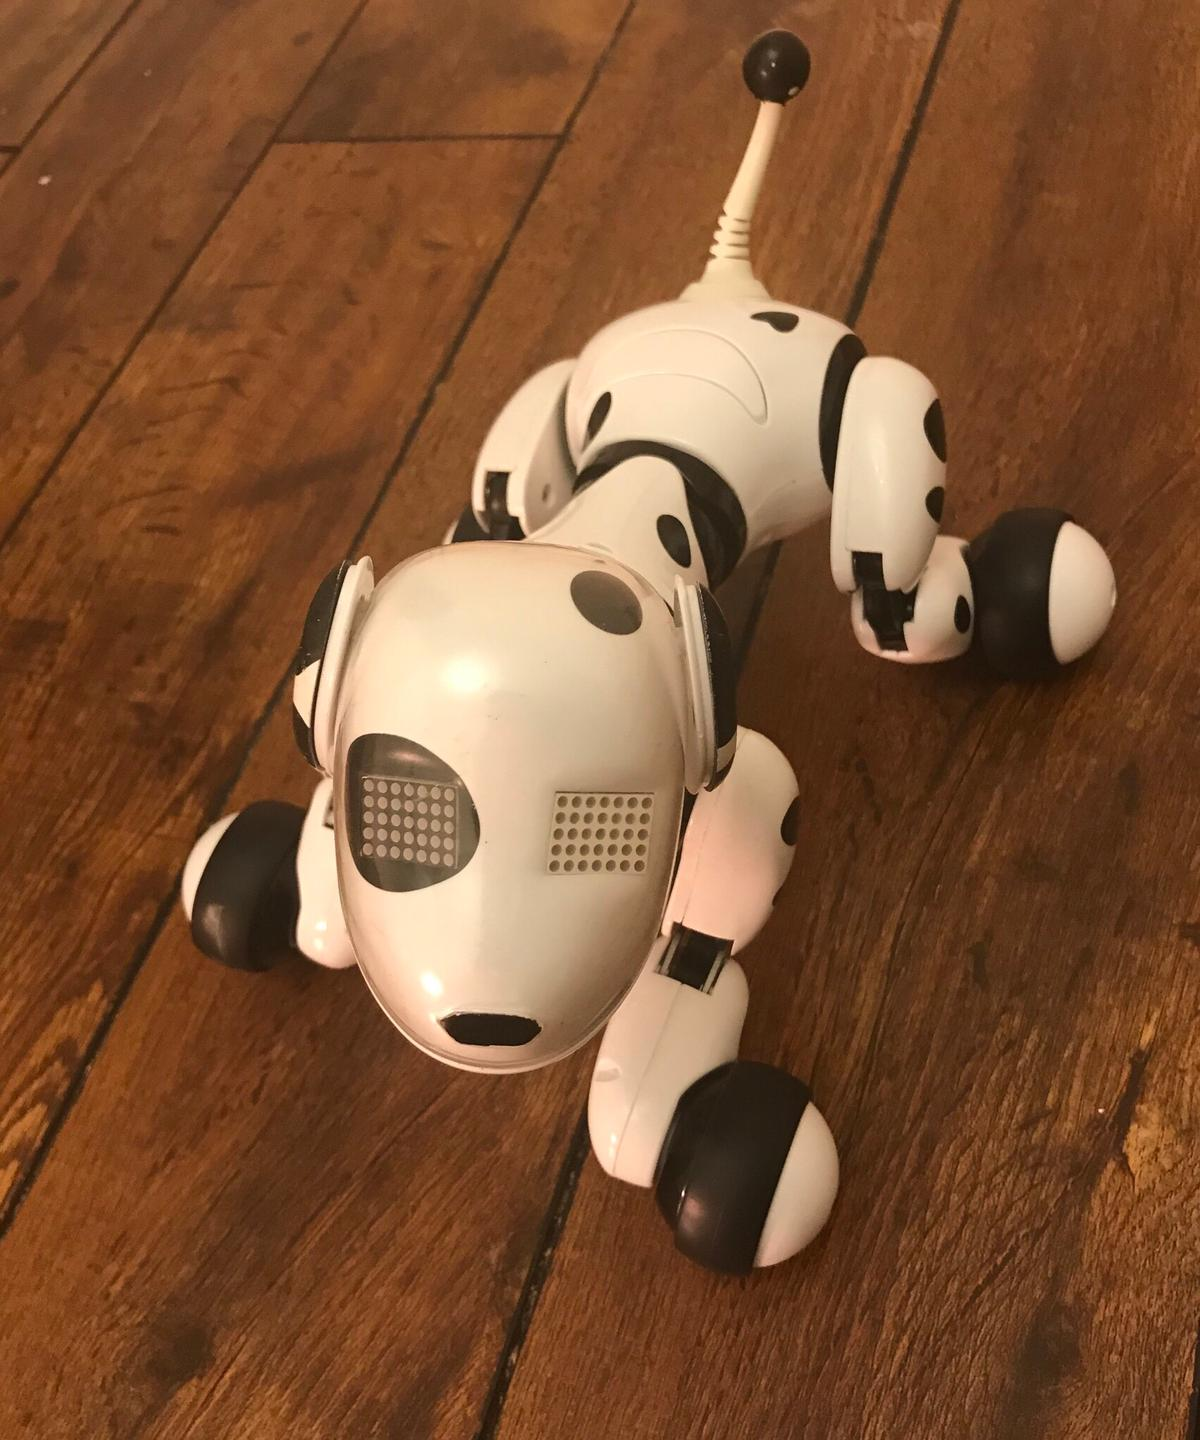 Zoomer Dalmatian robotic dog in WF13 Dewsbury for £30 00 for